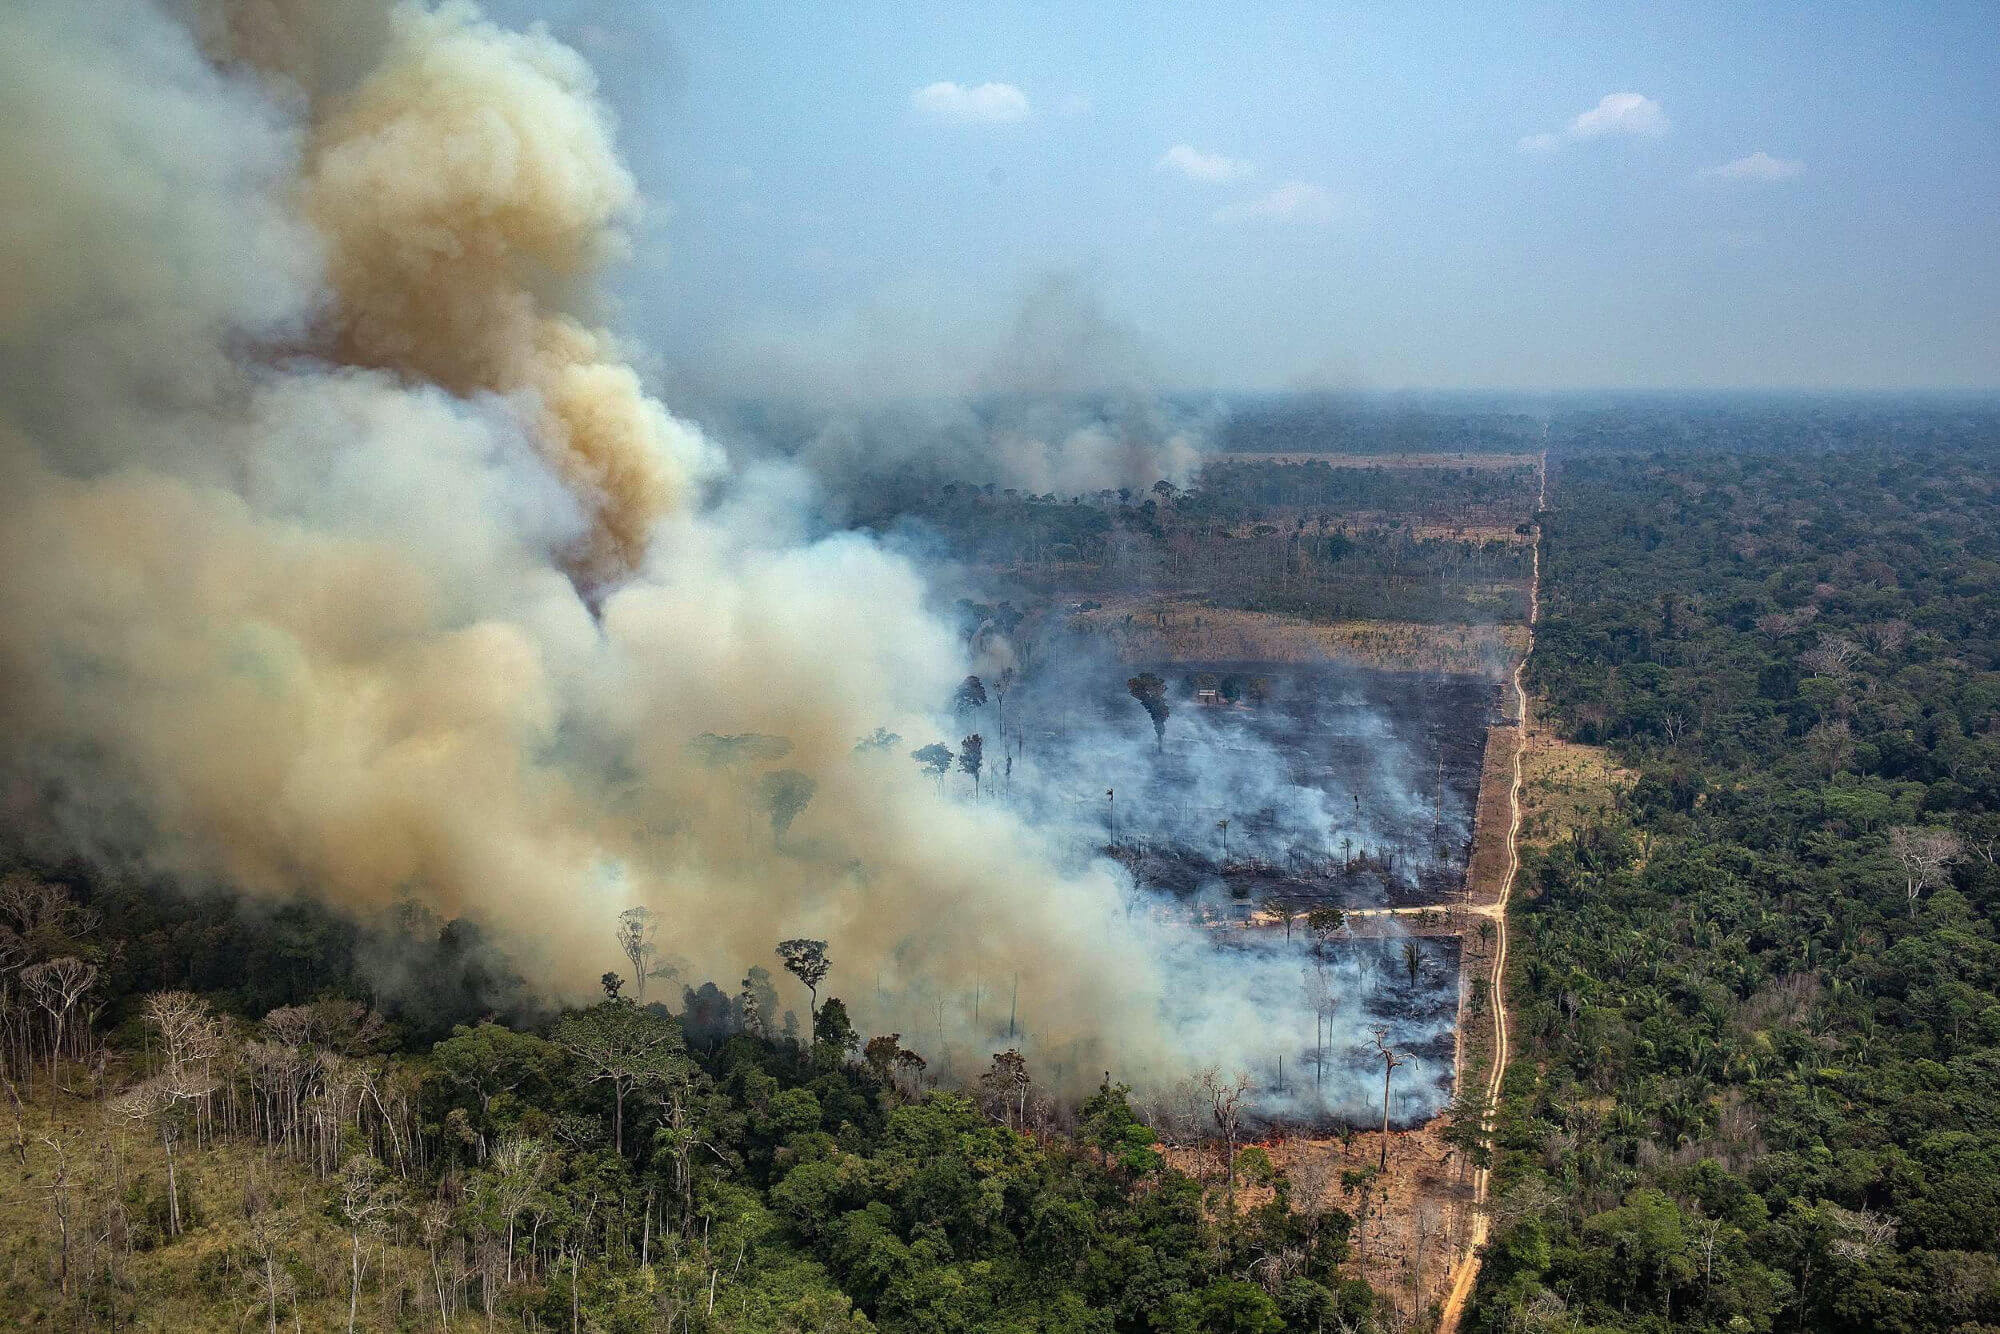 G7 leaders commit $26.6 million to fight wildfires in Amazon rainforest